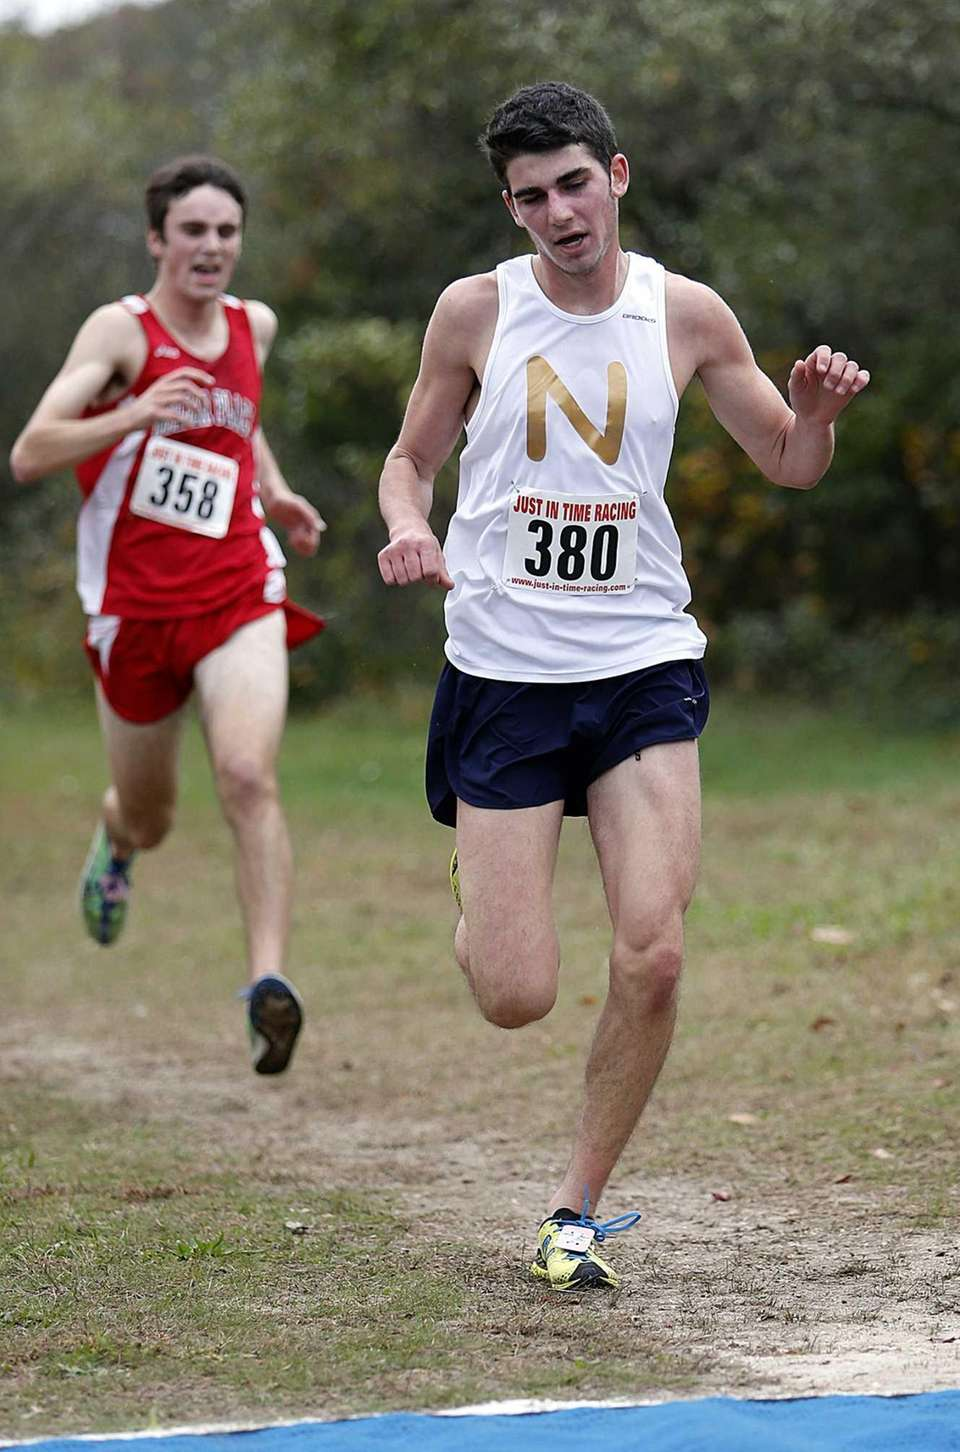 Northport's Alex Kramer (380) places fourth for his